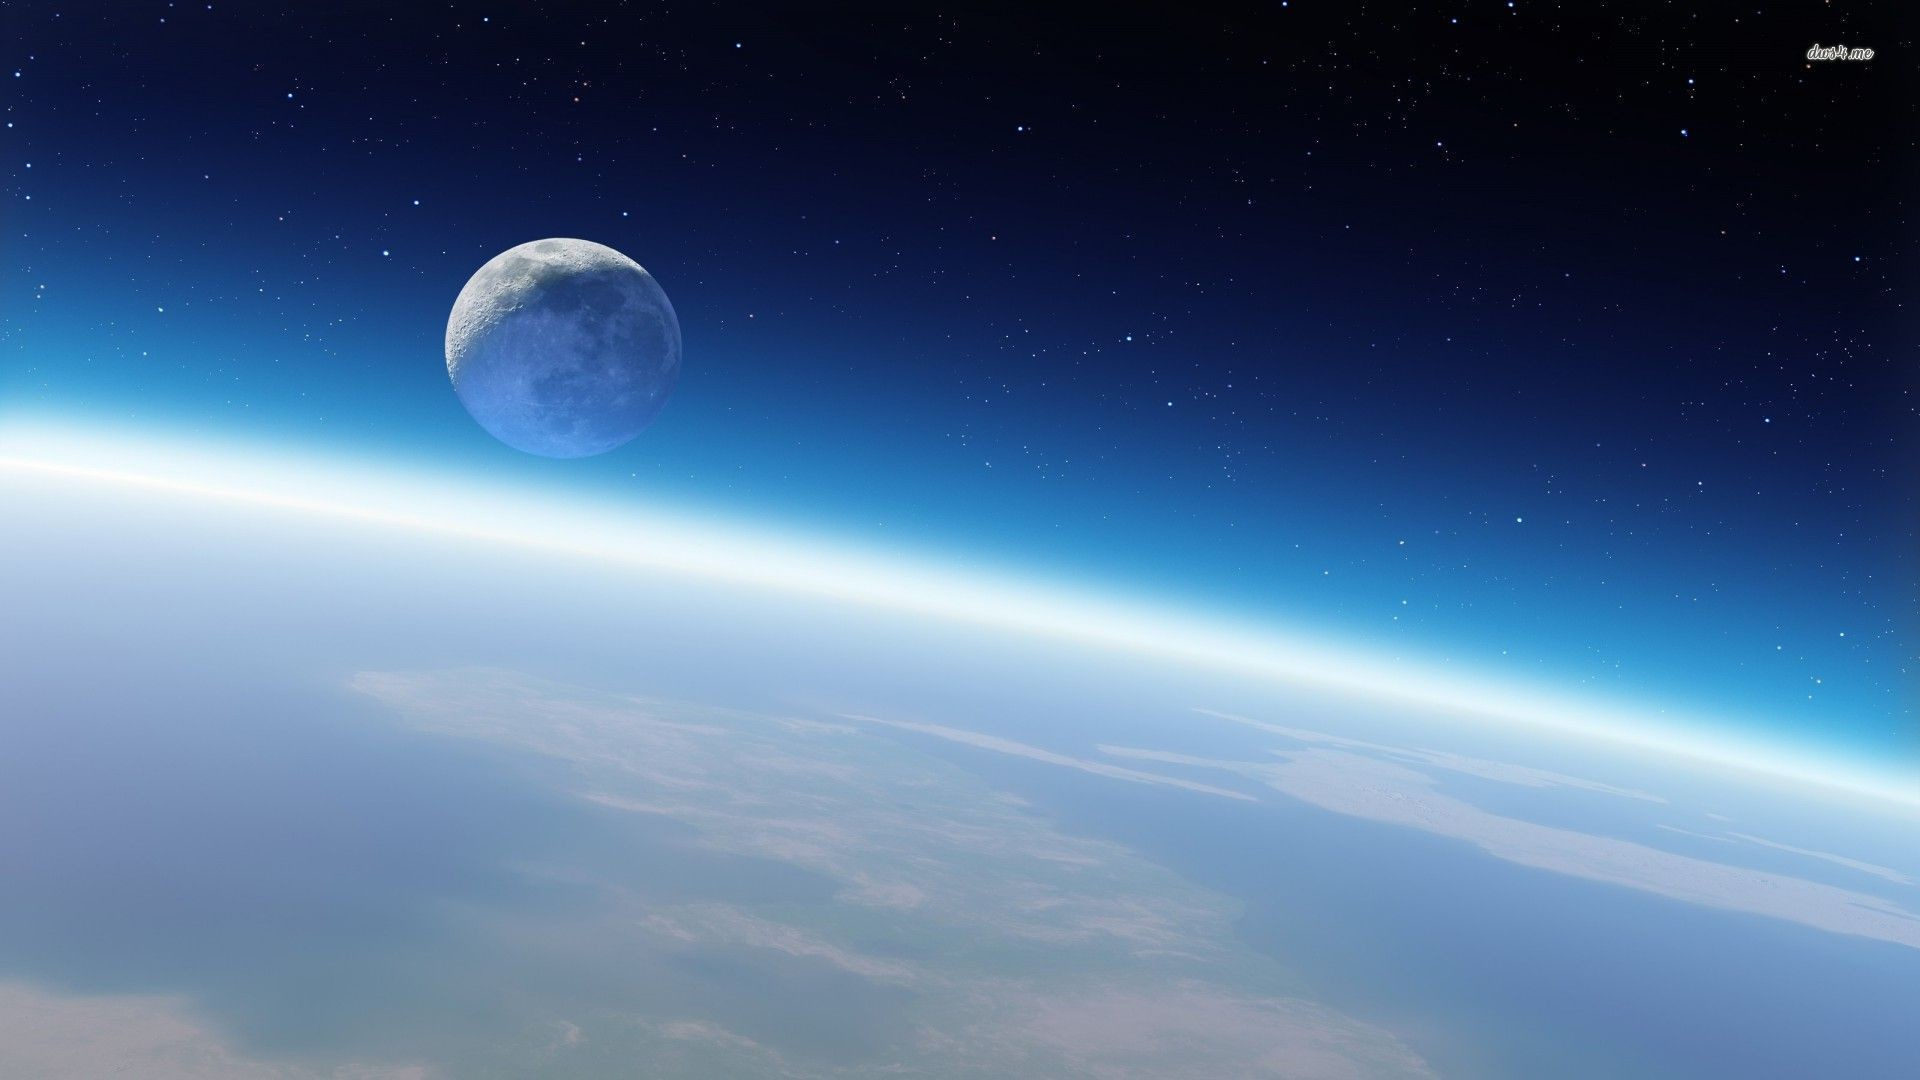 Name: 20613-earth-and-moon-1920×1080-space-wallpaper.